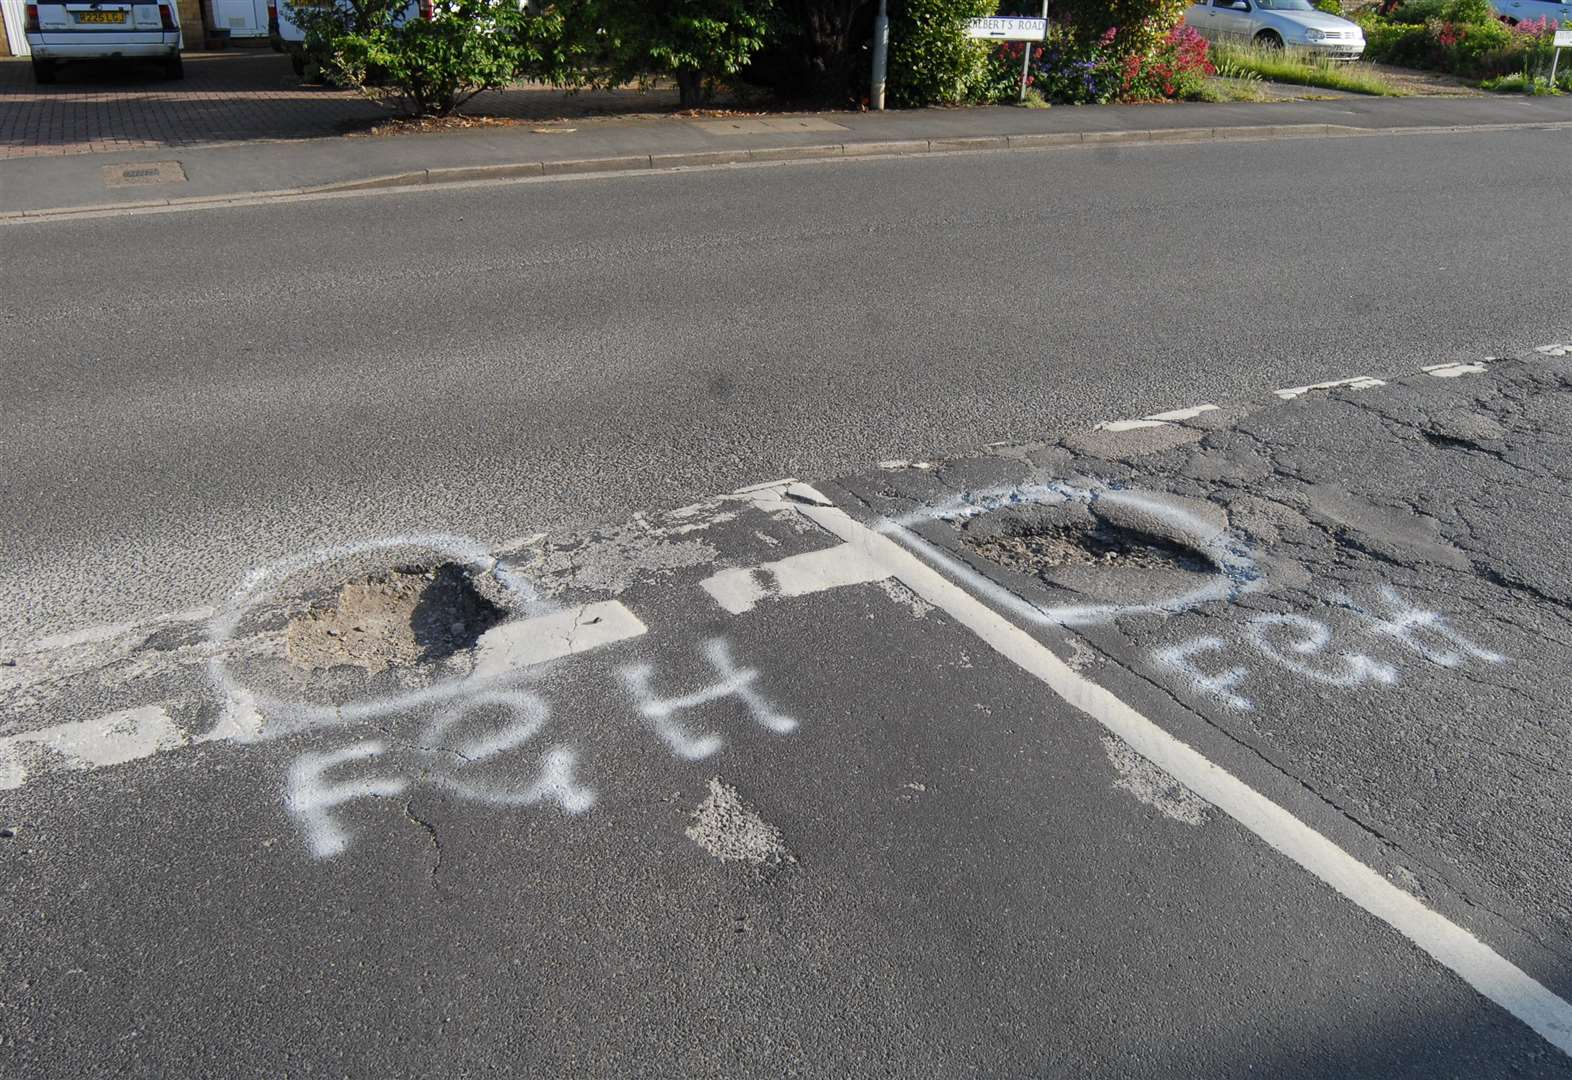 Updated: Graffiti artist praised for warning road users of dangerous potholes